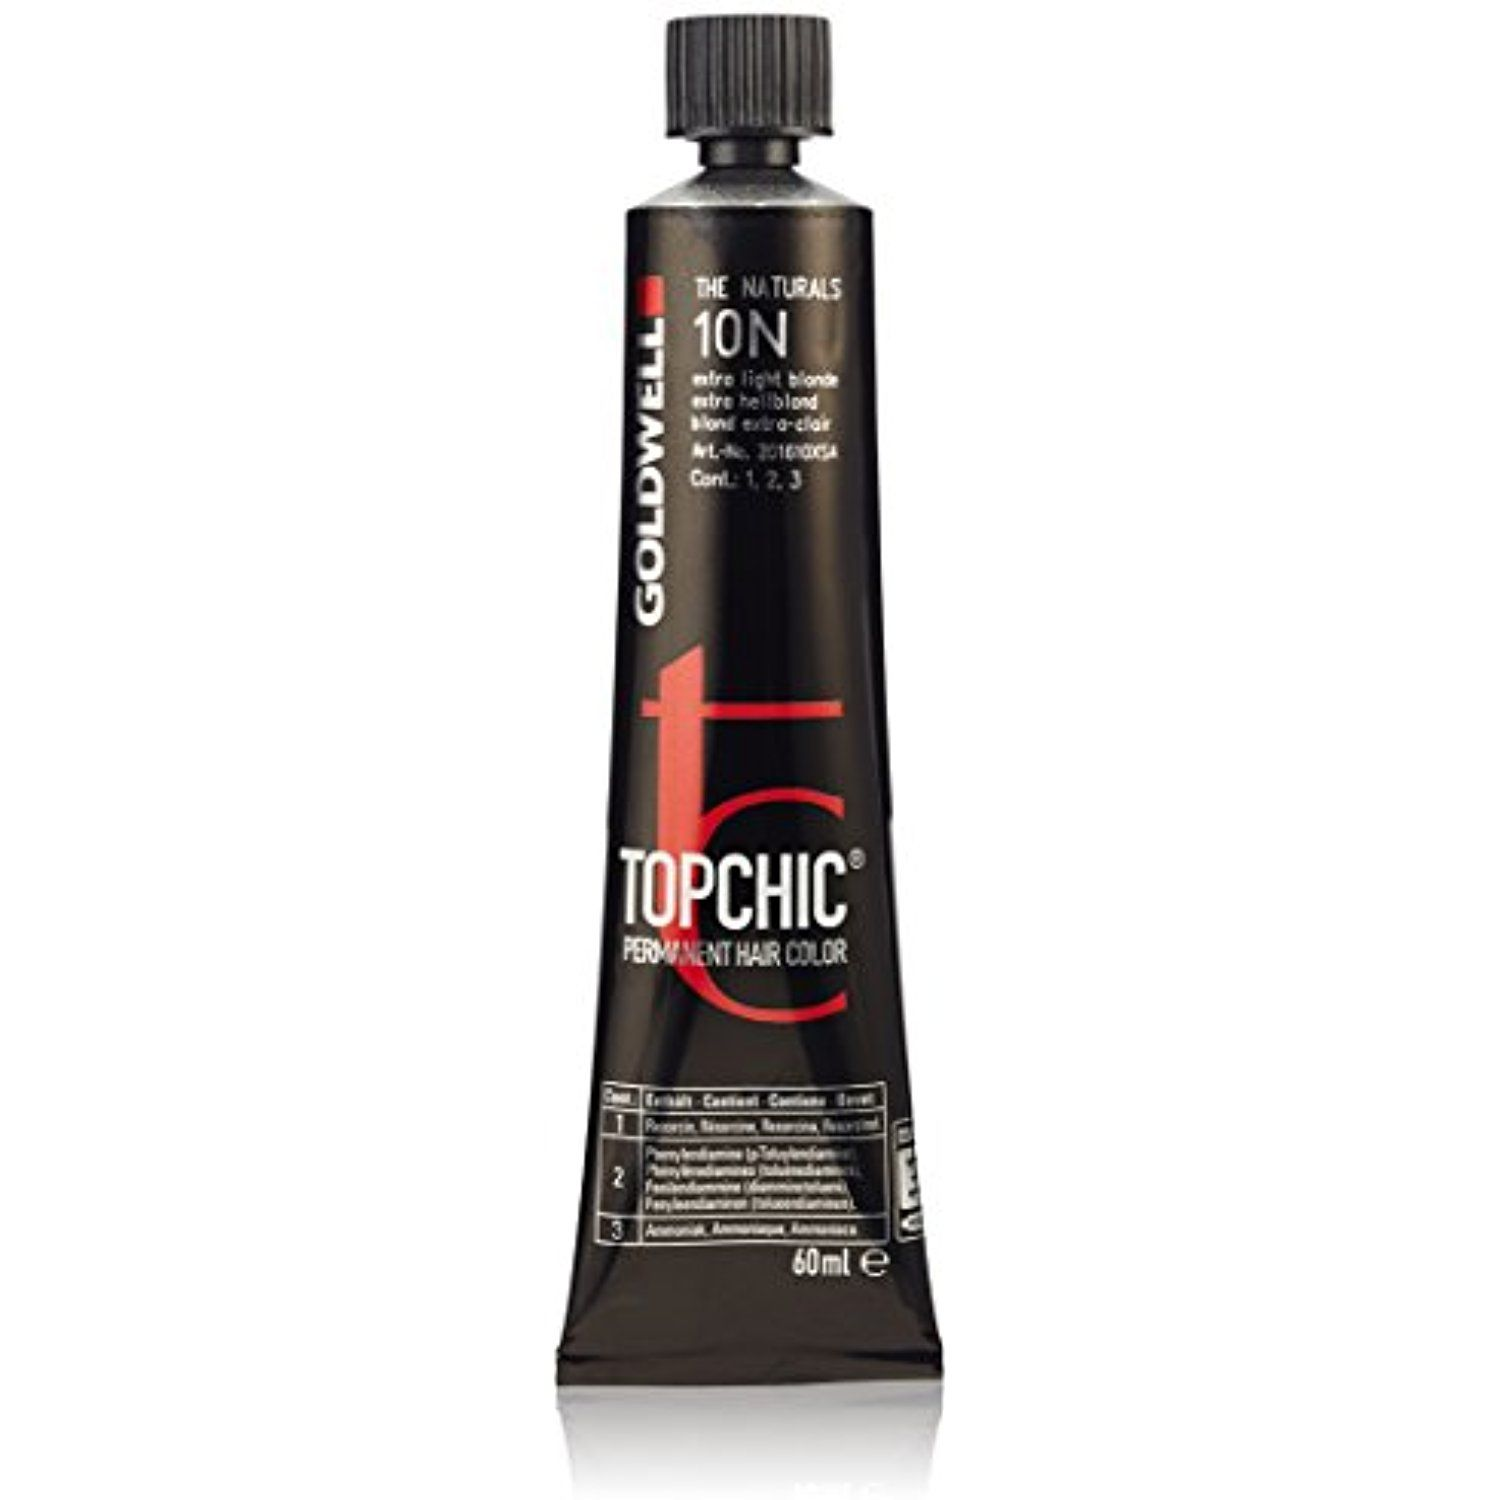 Goldwell Topchic Hair Color Coloration Tube 10n Extra